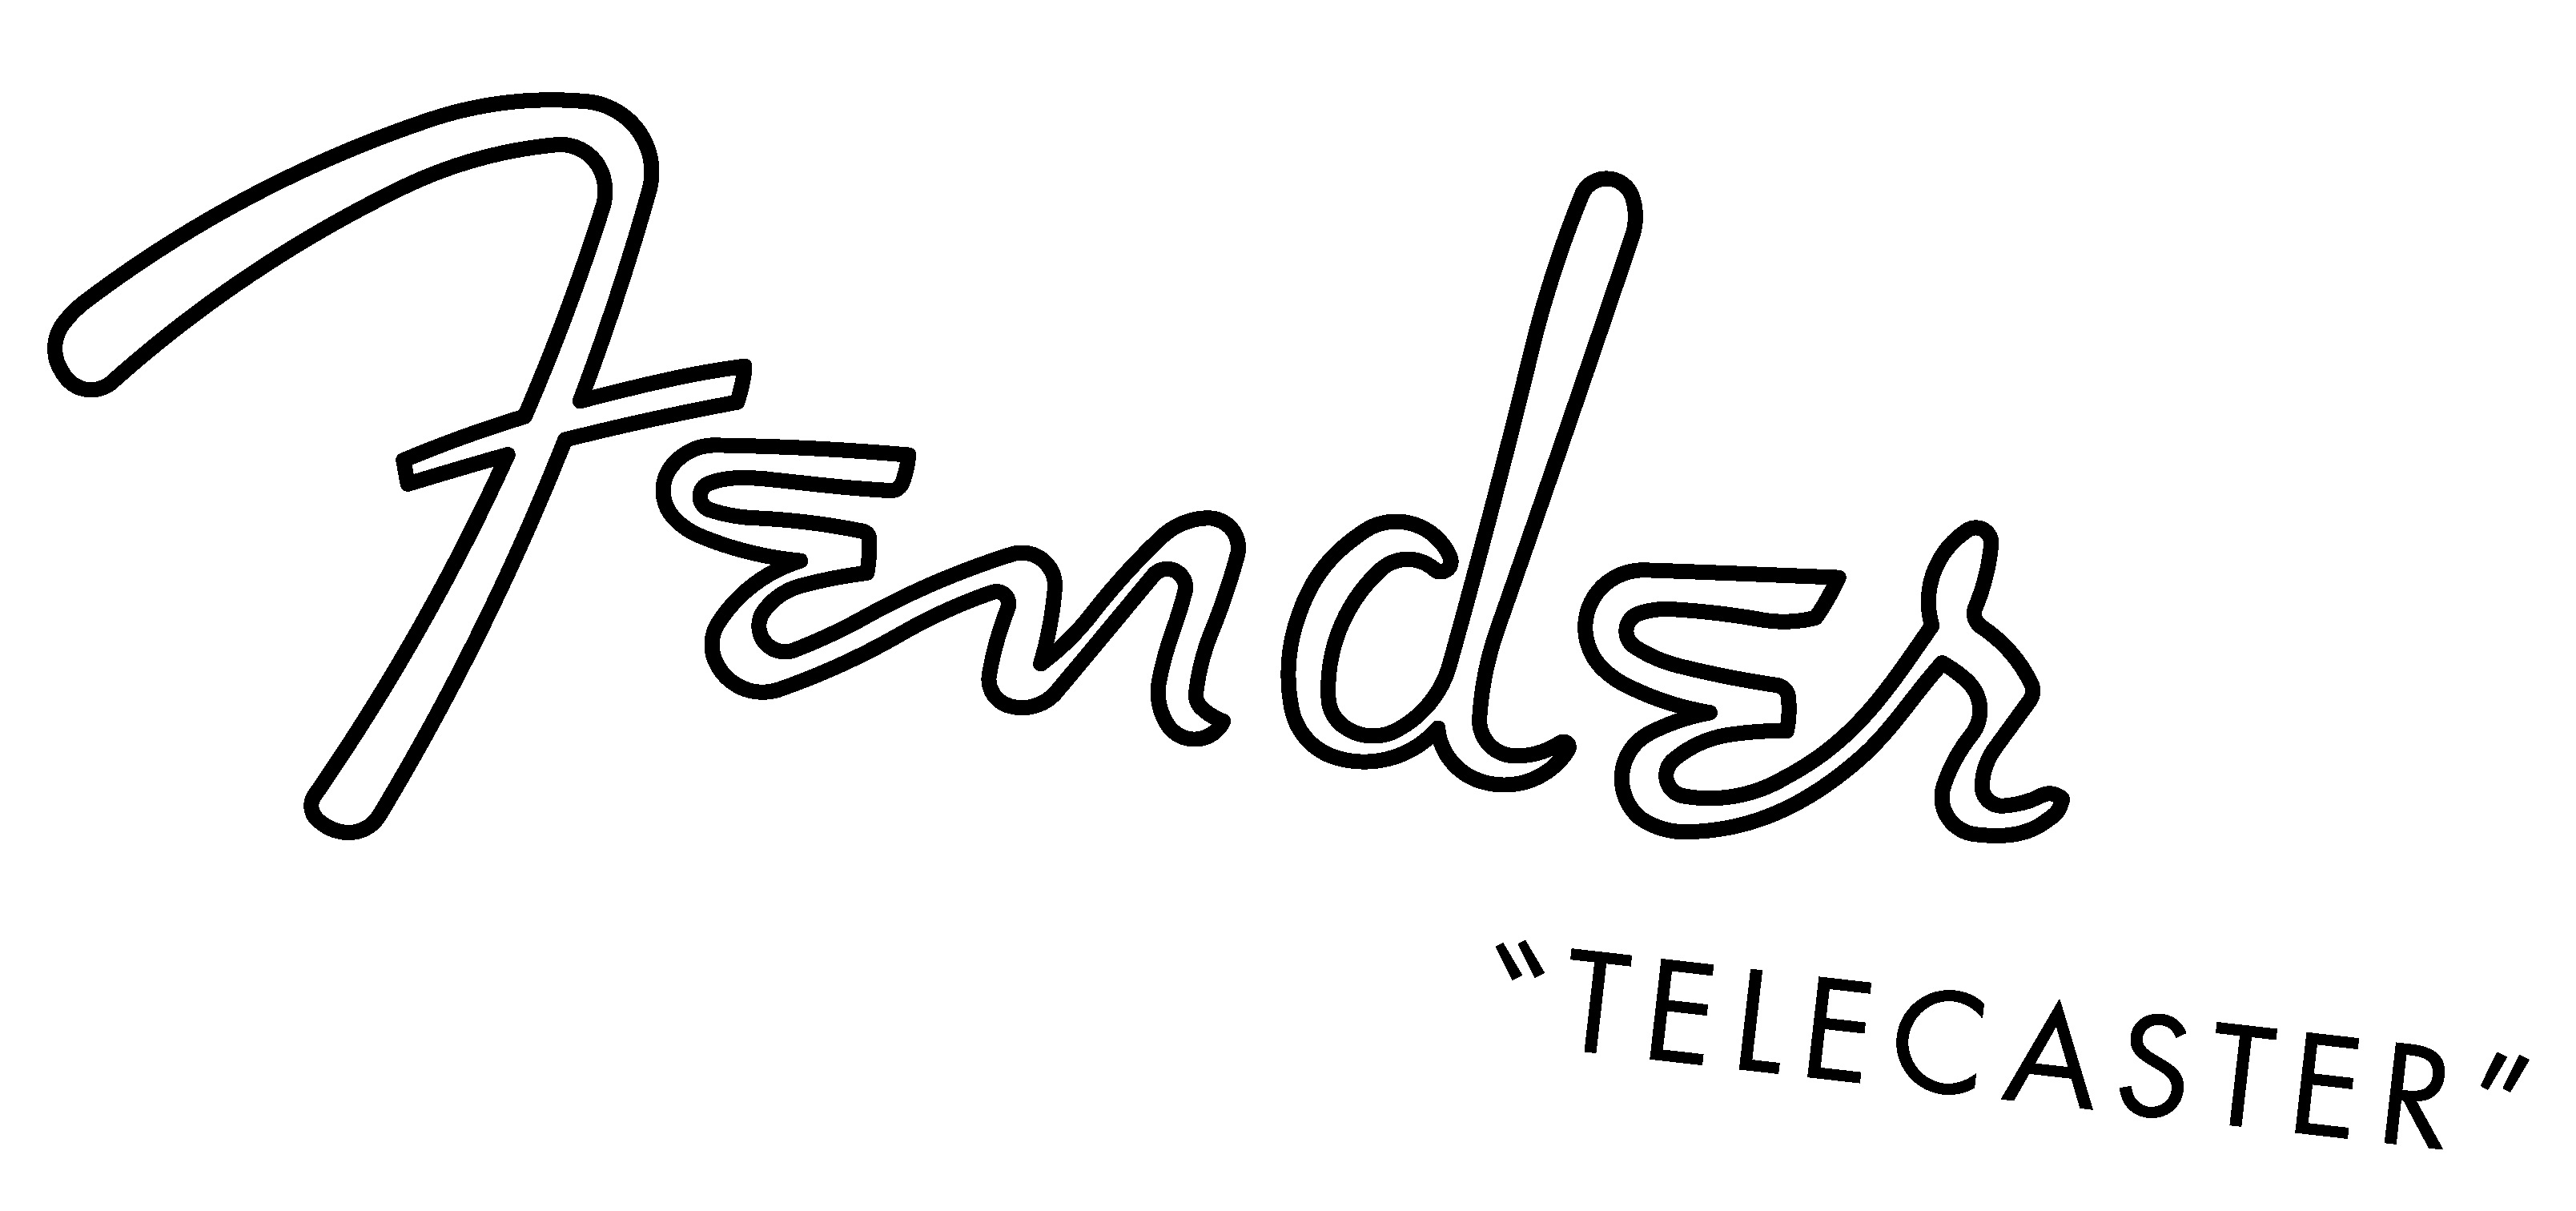 fender telecaster logo free download  u2022 playapk co